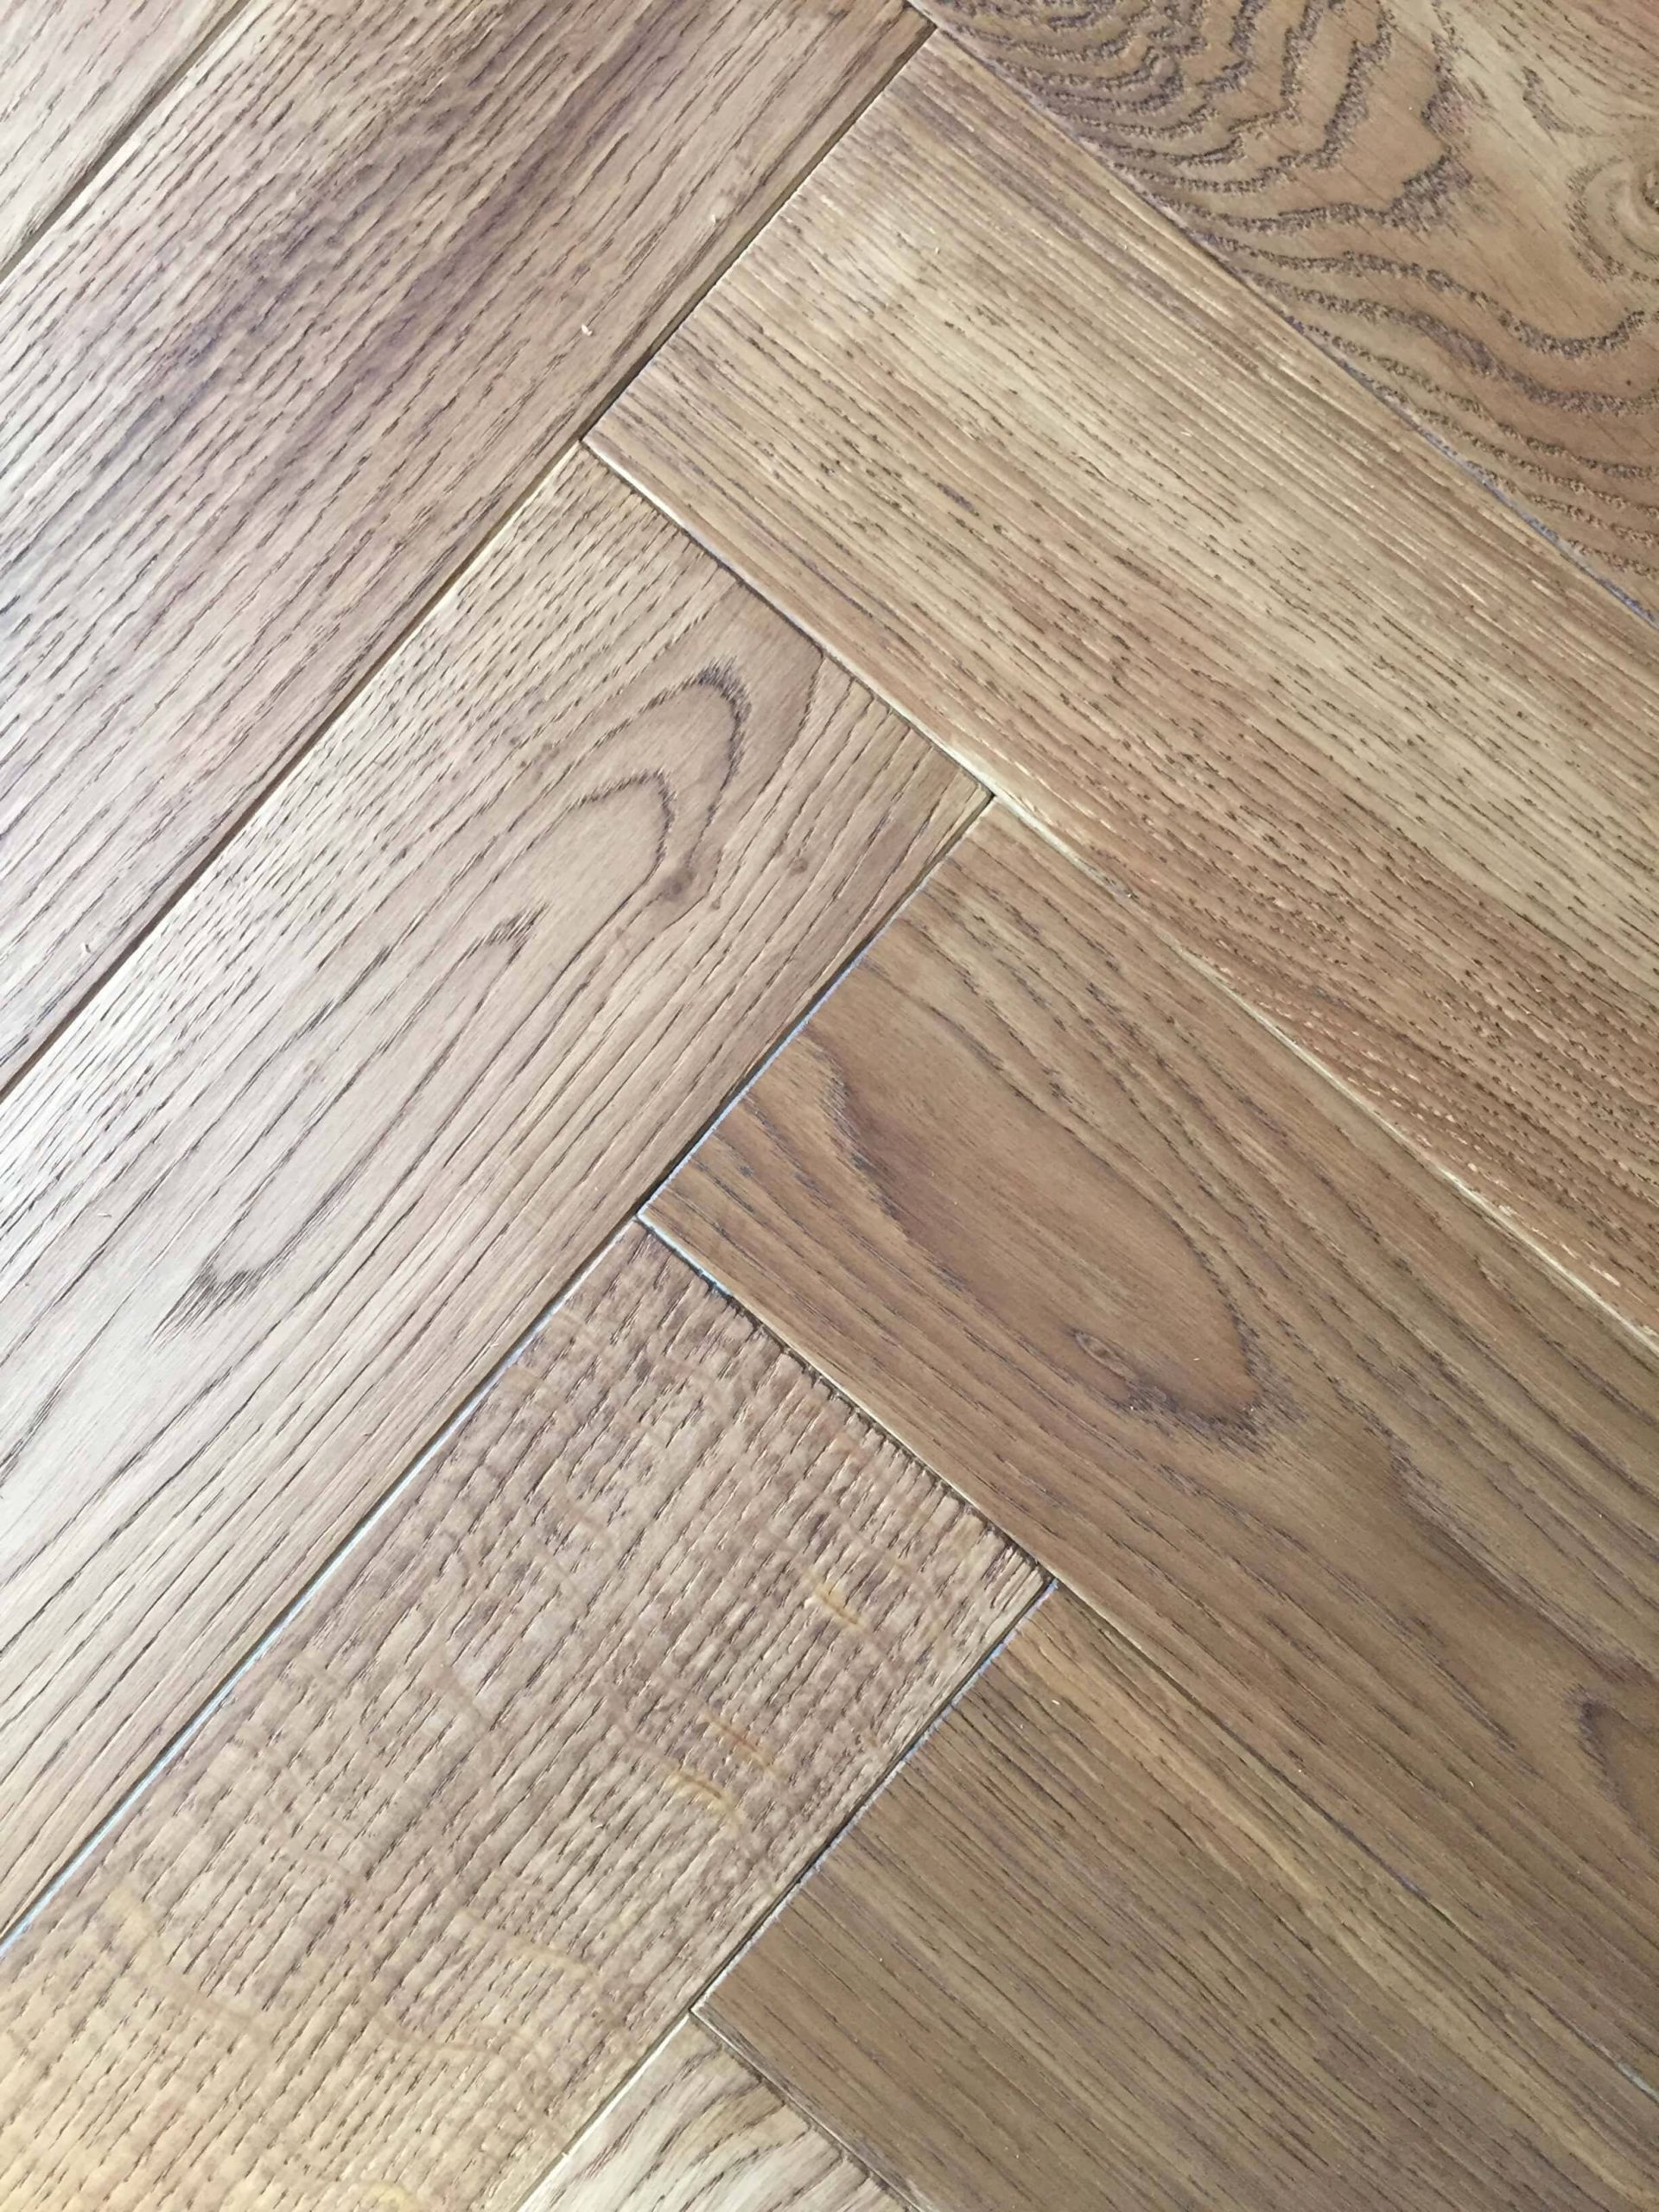 hardwood floor repair long beach of ceramic tile wood floor transition from tile to wood floors light to intended for ceramic tile wood floor new decorating an open floor plan living room aw